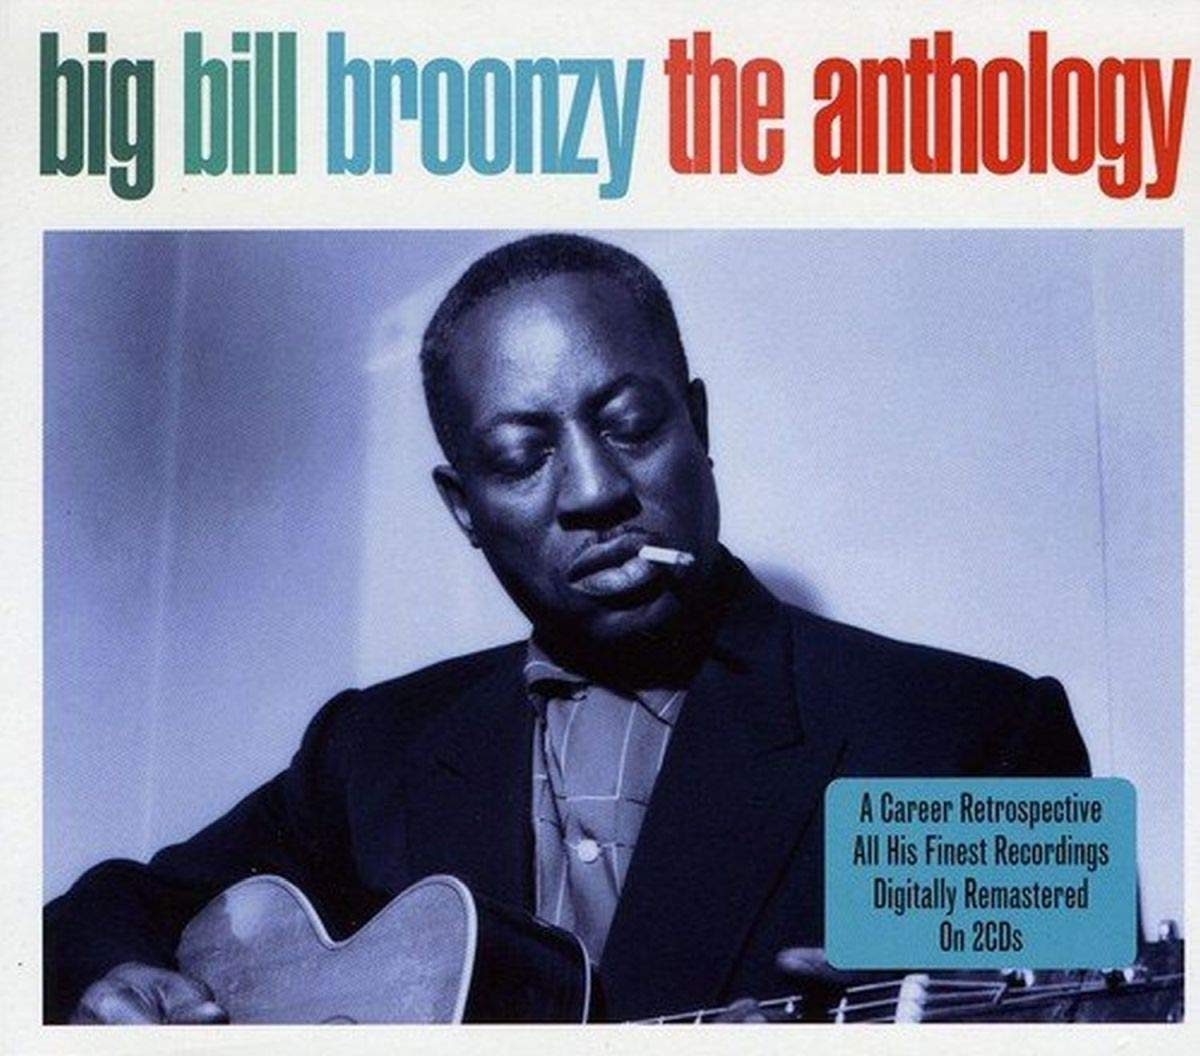 Big Bill Broonzy - The Anthology (2011) [FLAC] Download